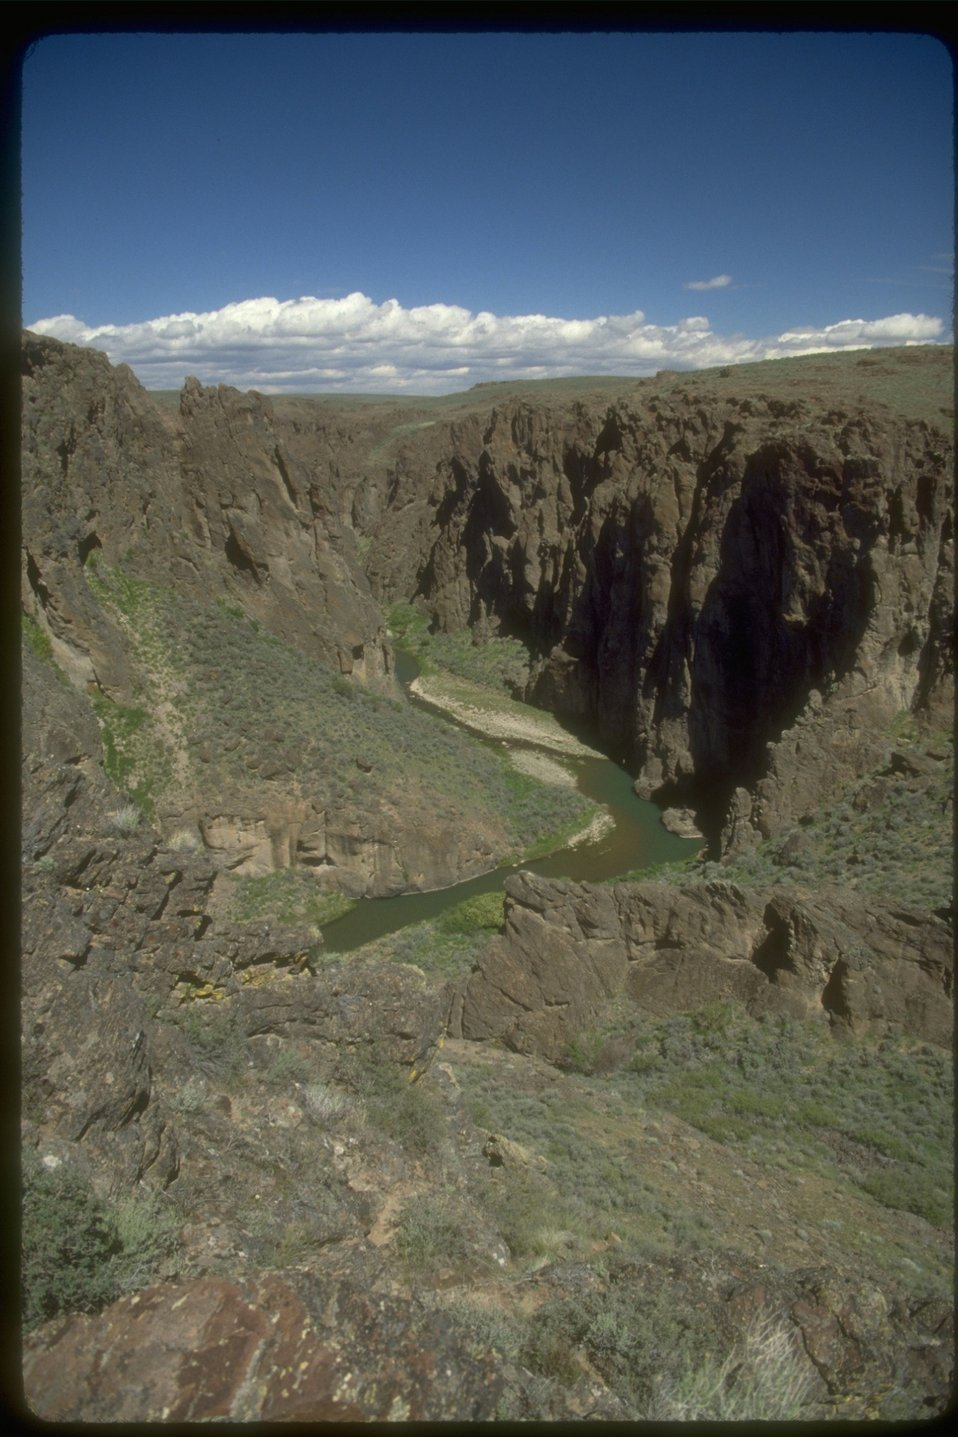 View from canyon rim looking down to the Owyhee River.  There are very steep cliffs going down to the river.